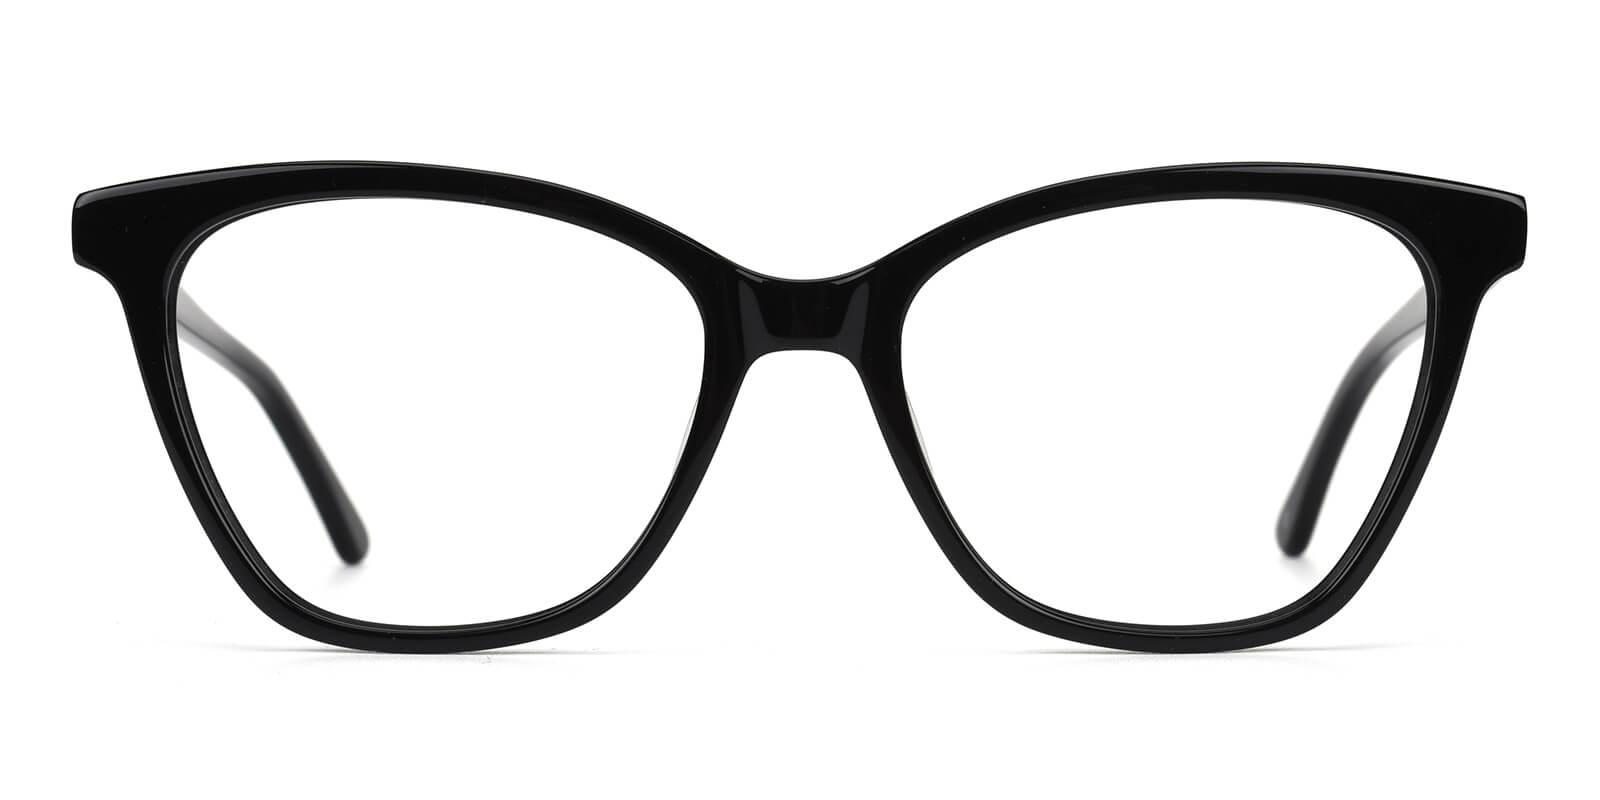 Castely-Black-Cat-Acetate-Eyeglasses-additional2